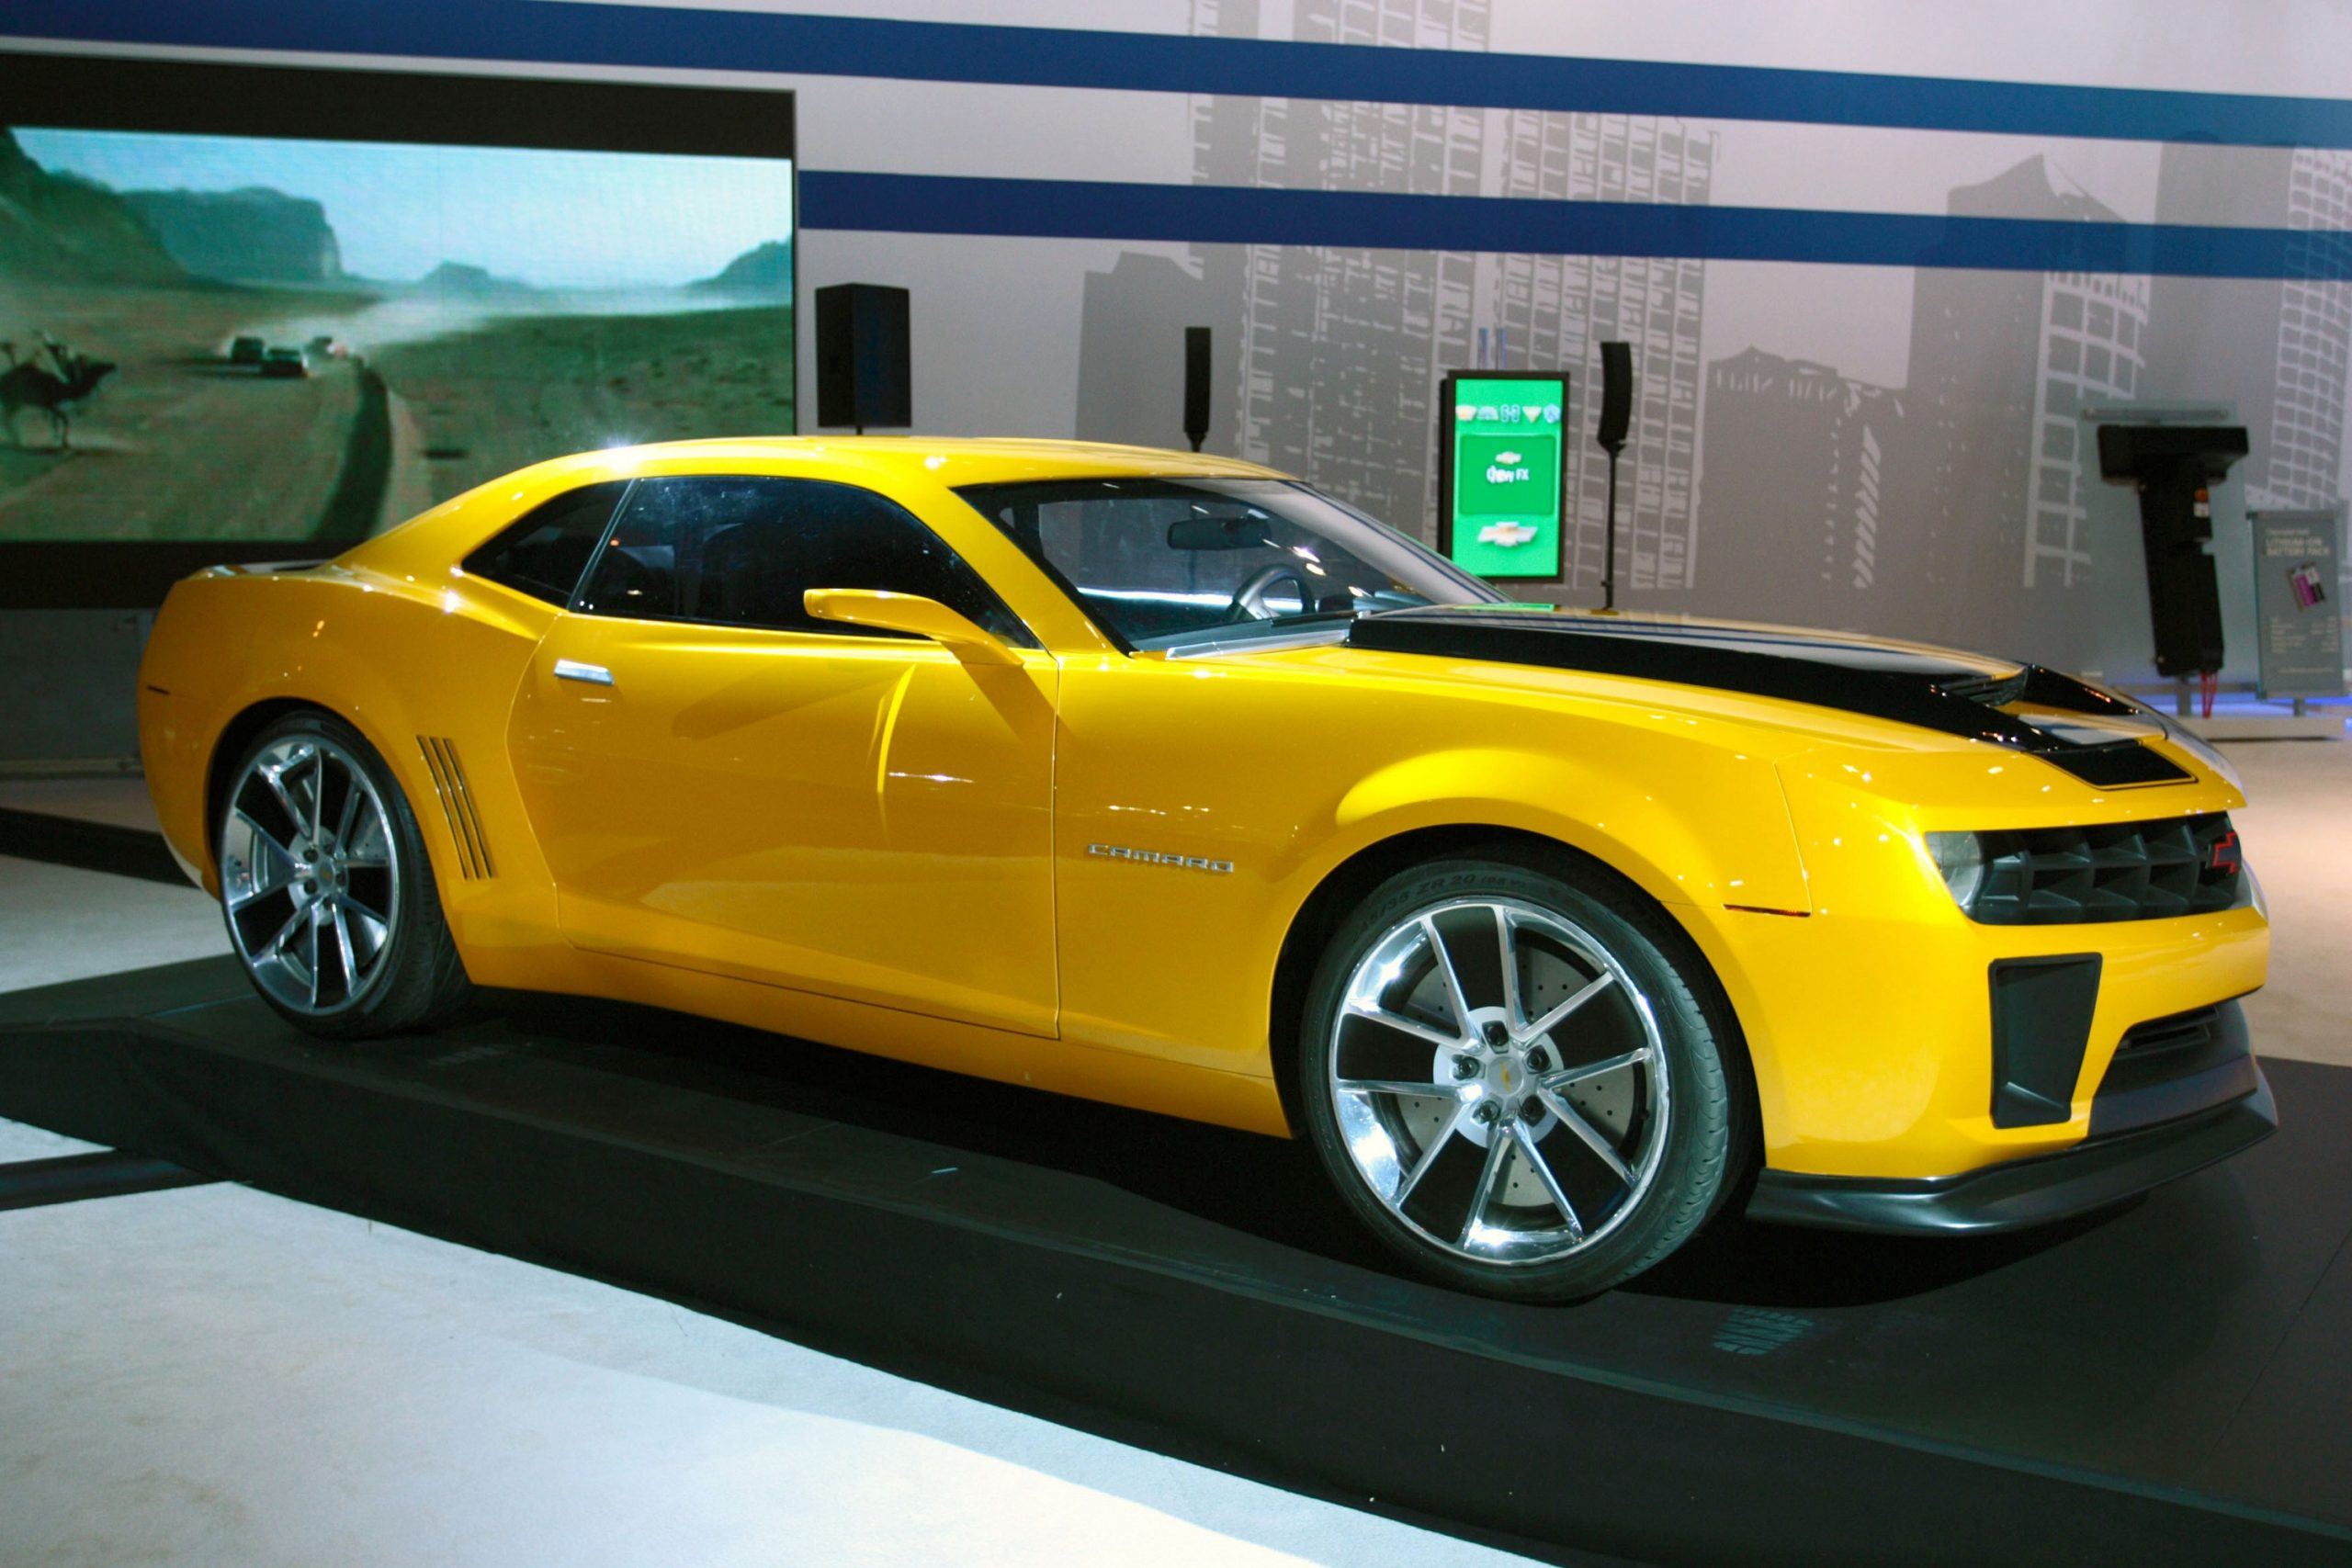 A yellow and black 2010 Camaro SS